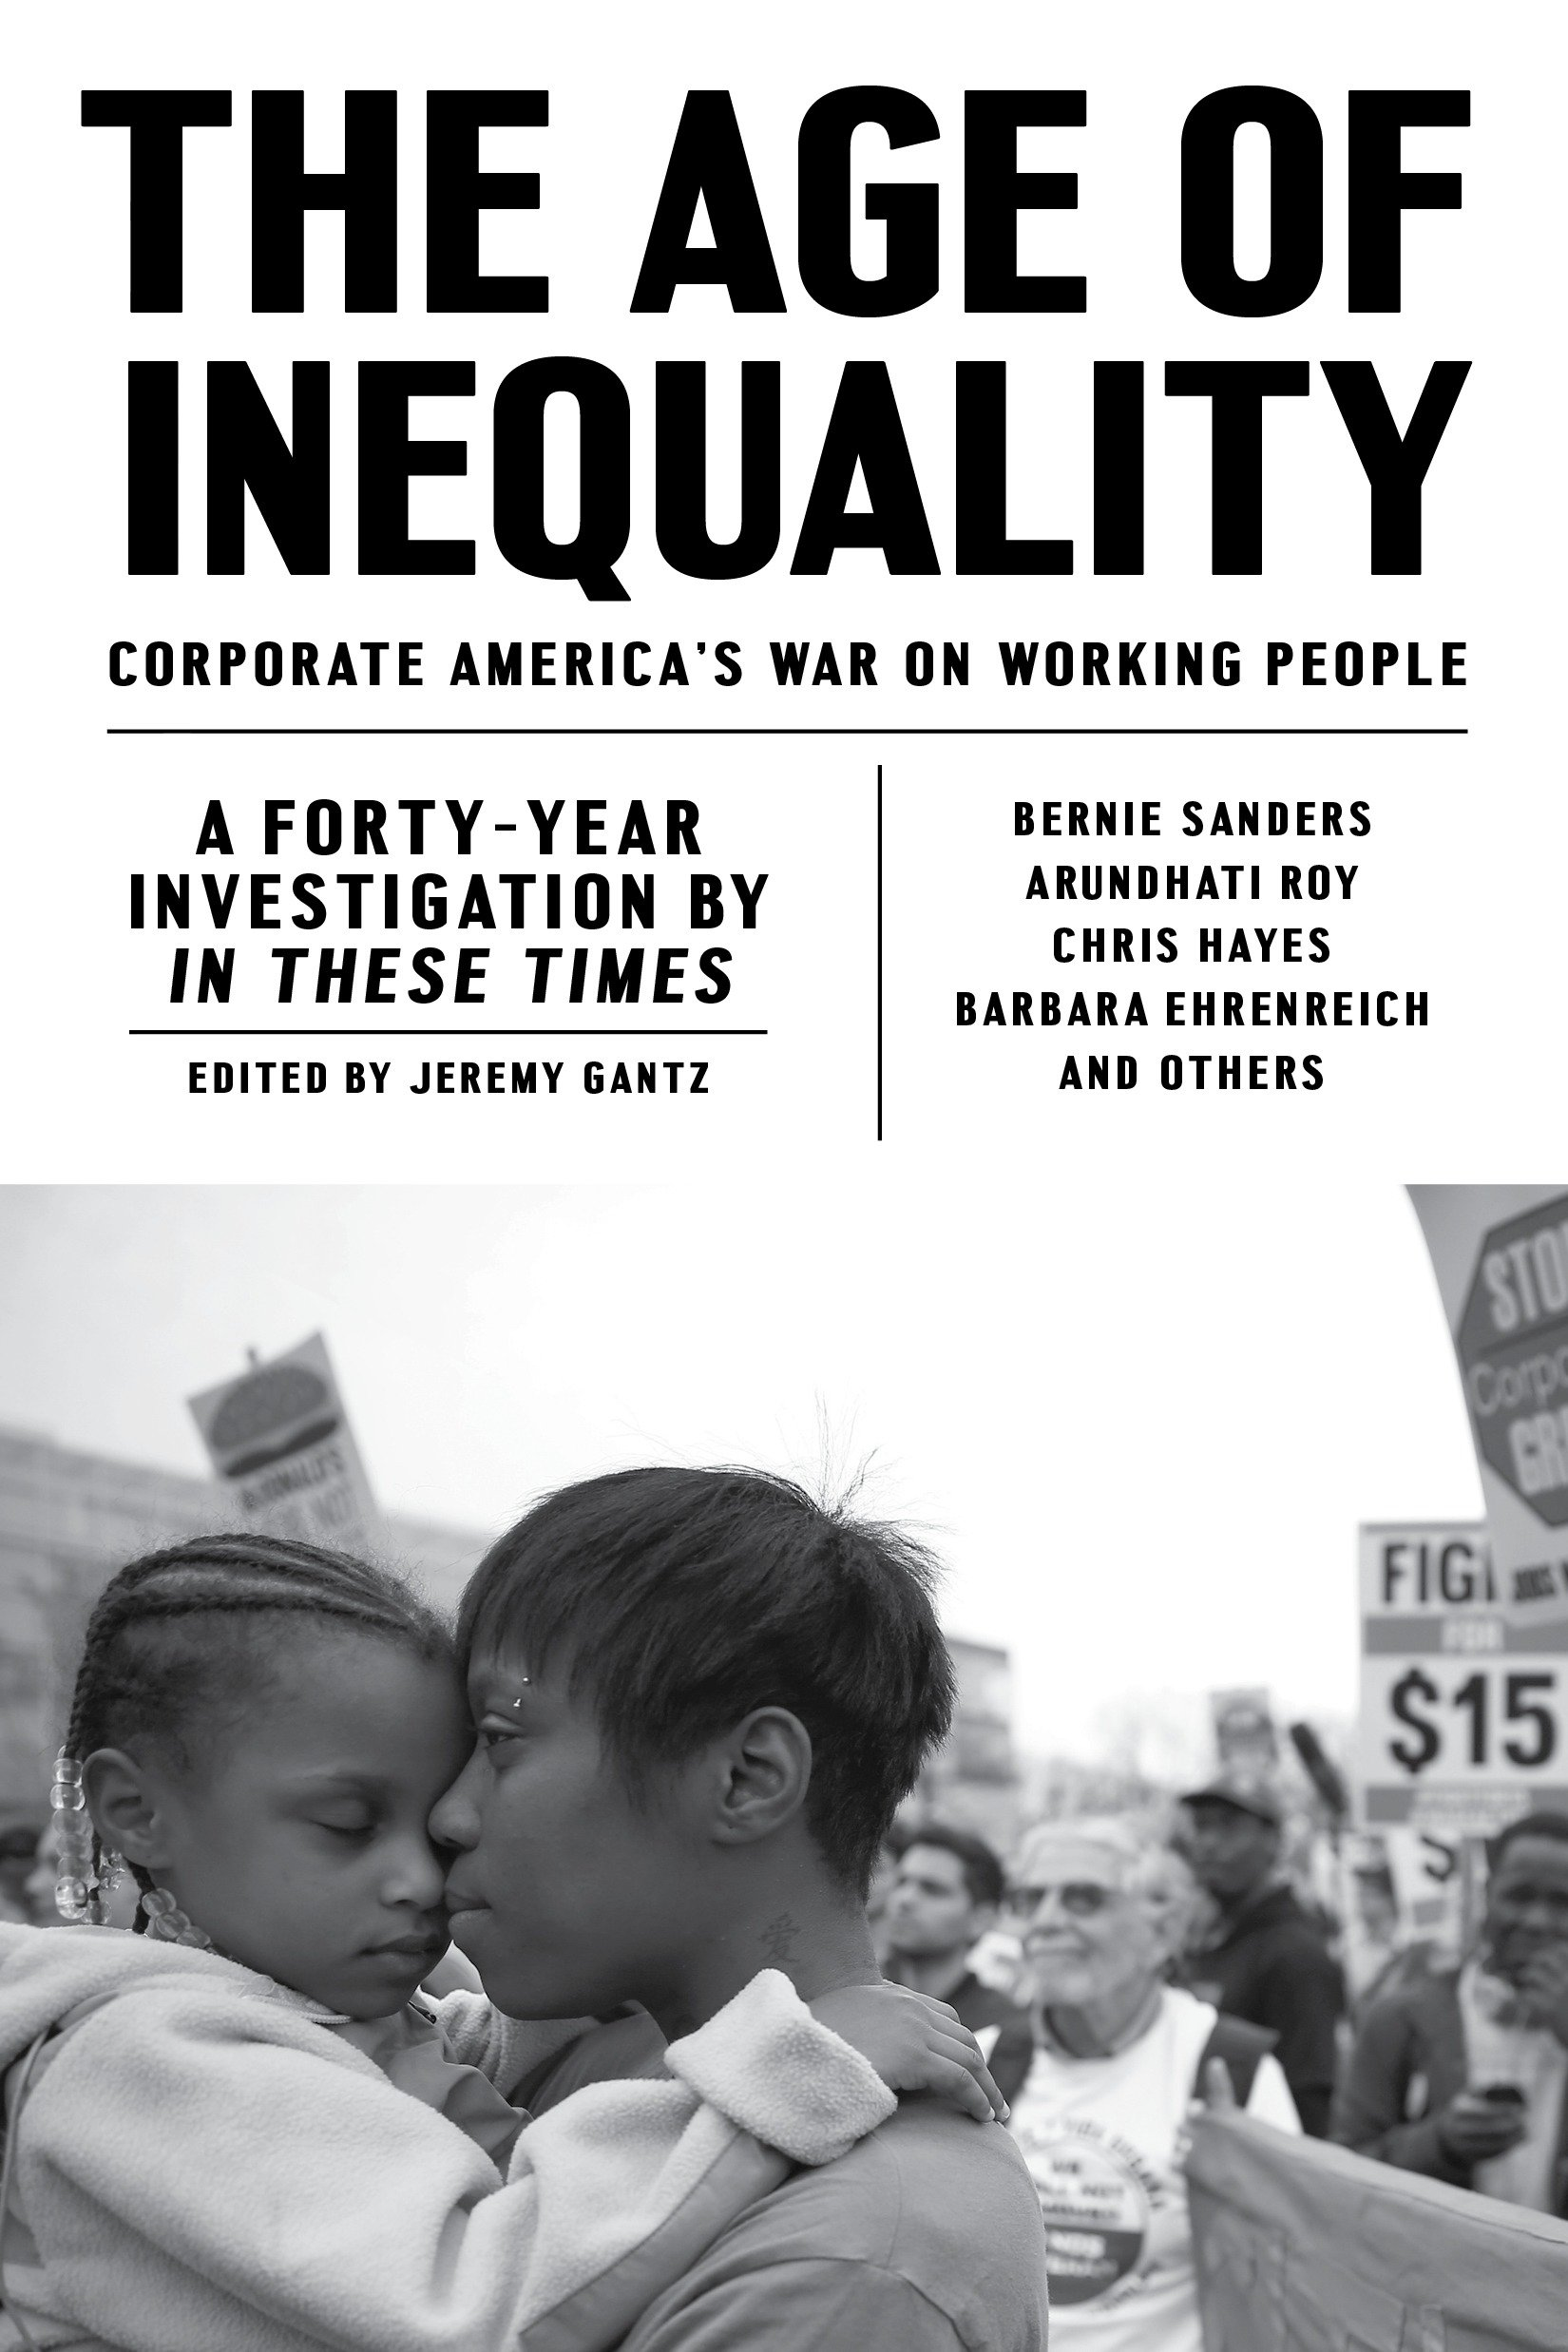 The Age of Inequality Corporate America's War on Working People